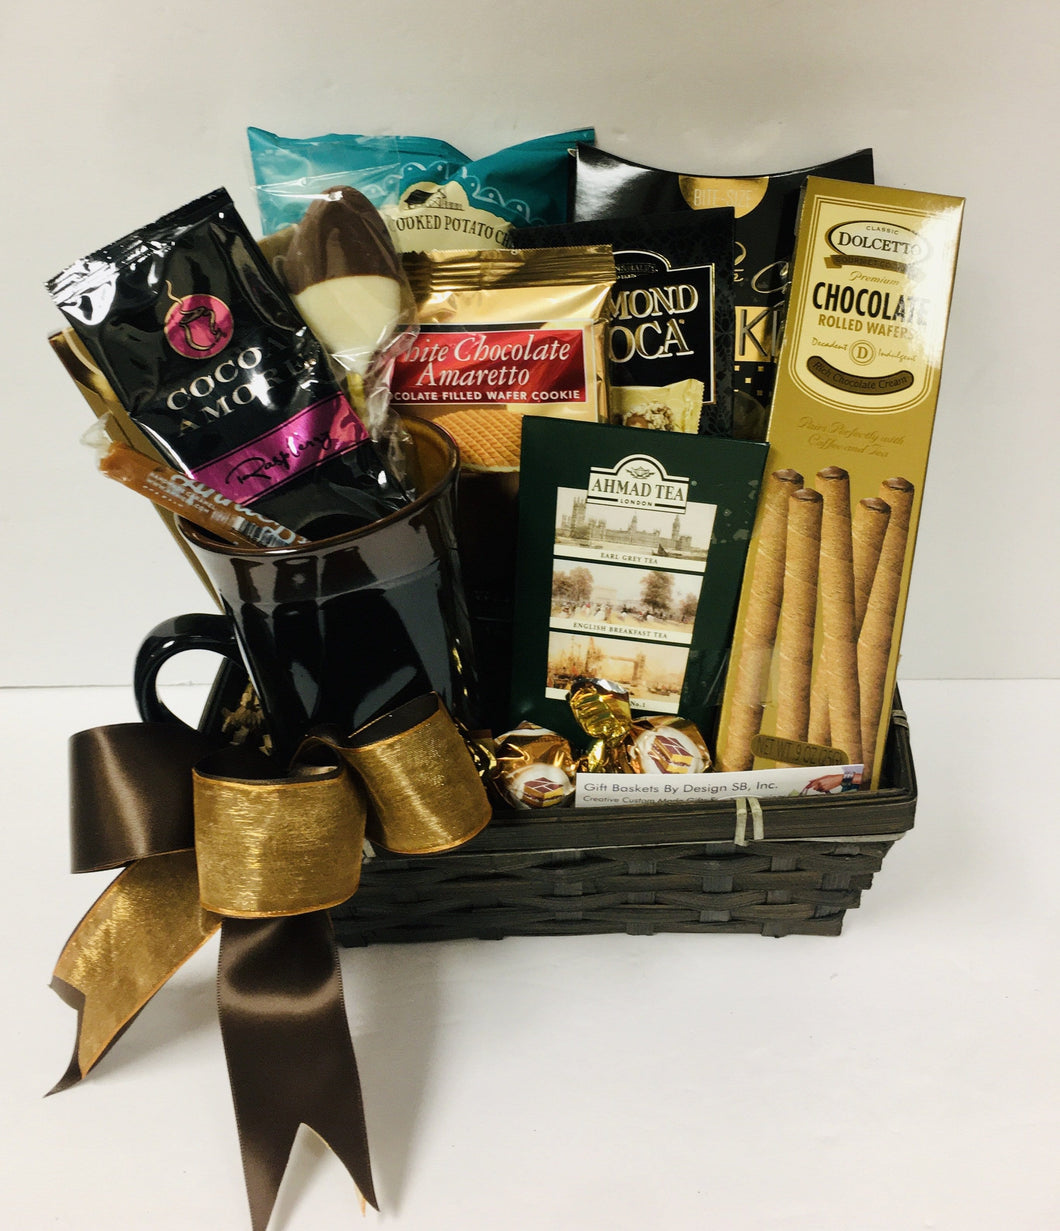 Thinking of U - Gift Baskets By Design SB, Inc.